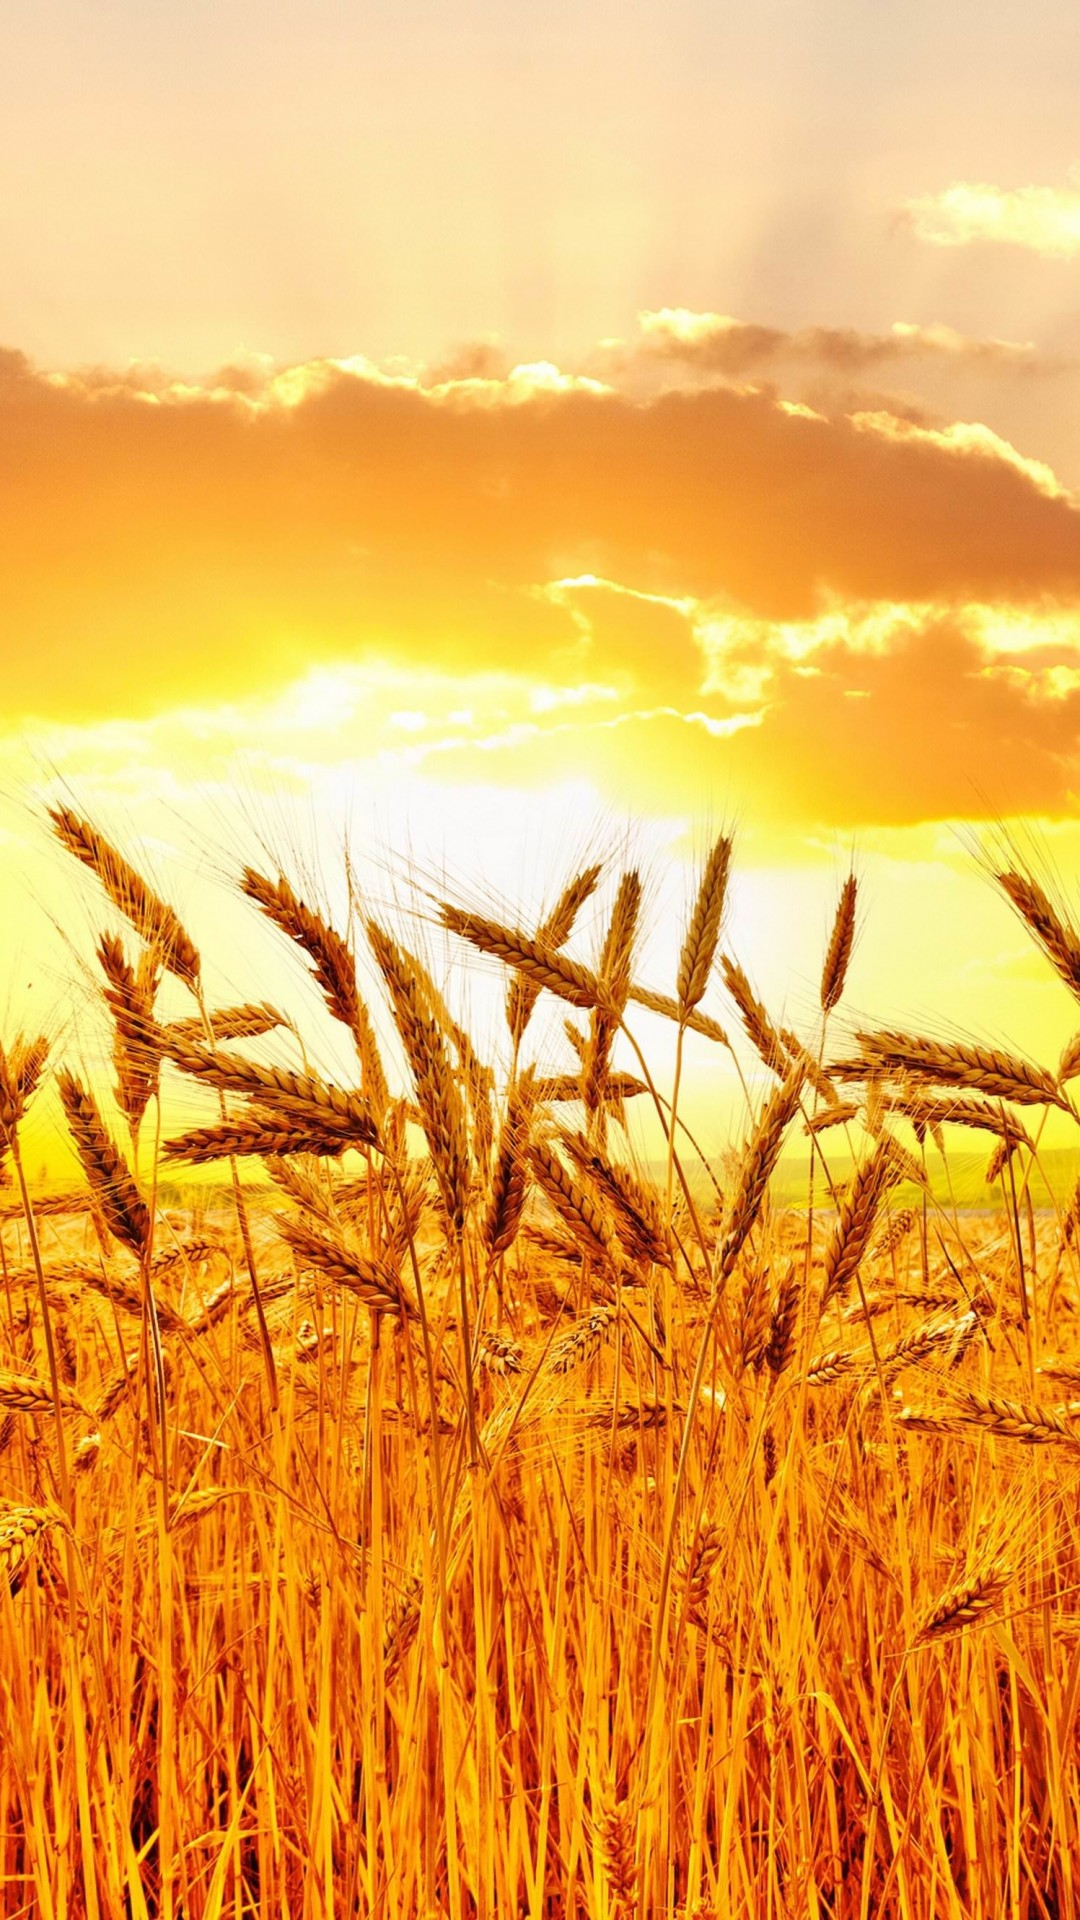 Golden Wheat Field At Sunset Wallpaper for SONY Xperia Z3